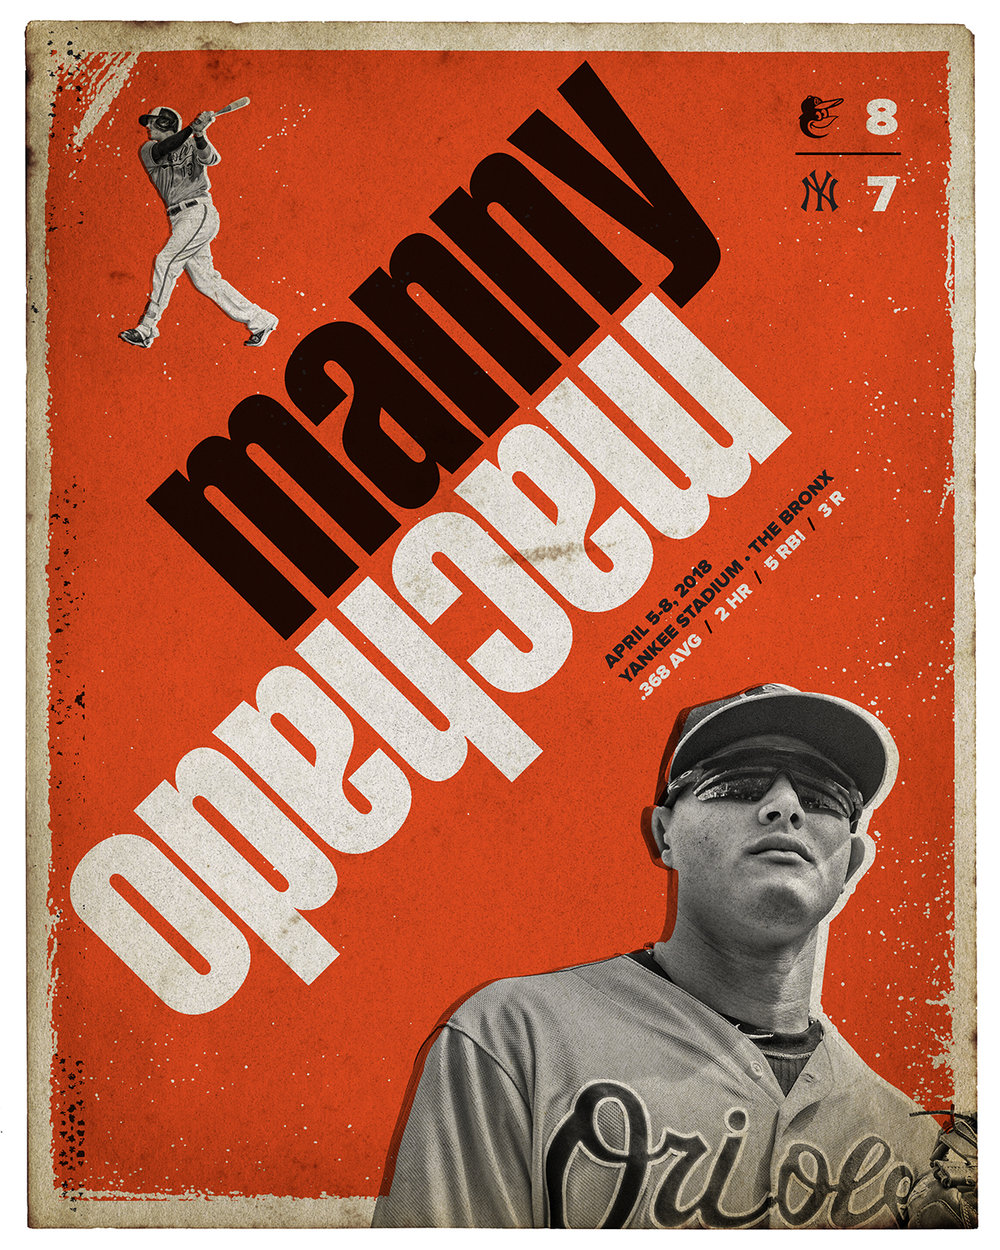 Manny-Machado_Yanks-Series_v2_4x5.jpg